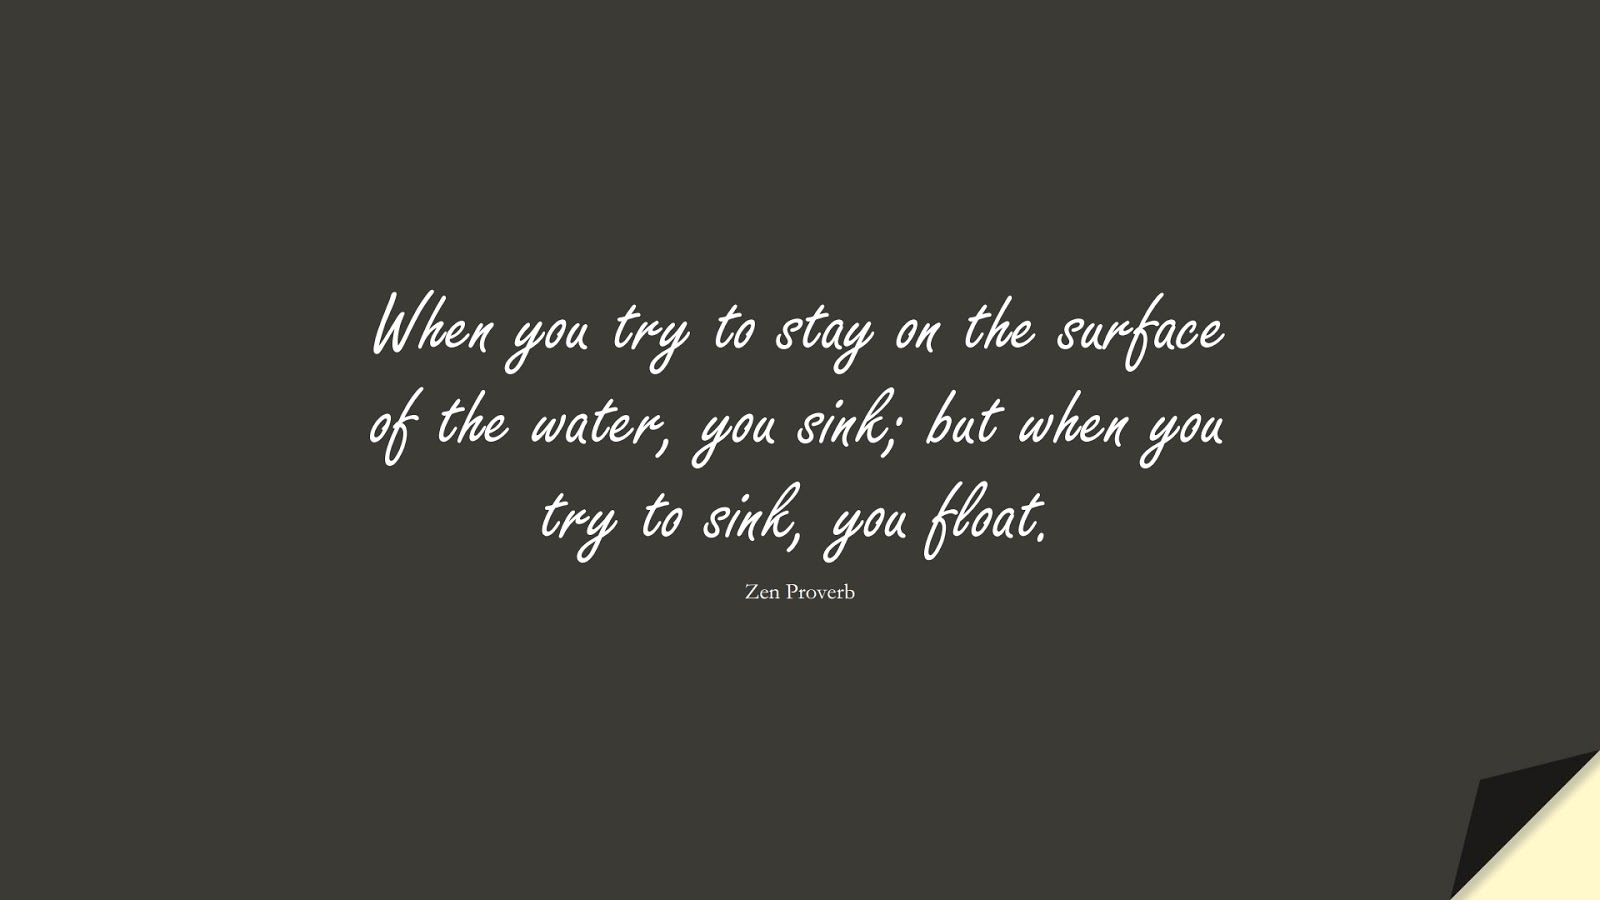 When you try to stay on the surface of the water, you sink; but when you try to sink, you float. (Zen Proverb);  #CalmQuotes